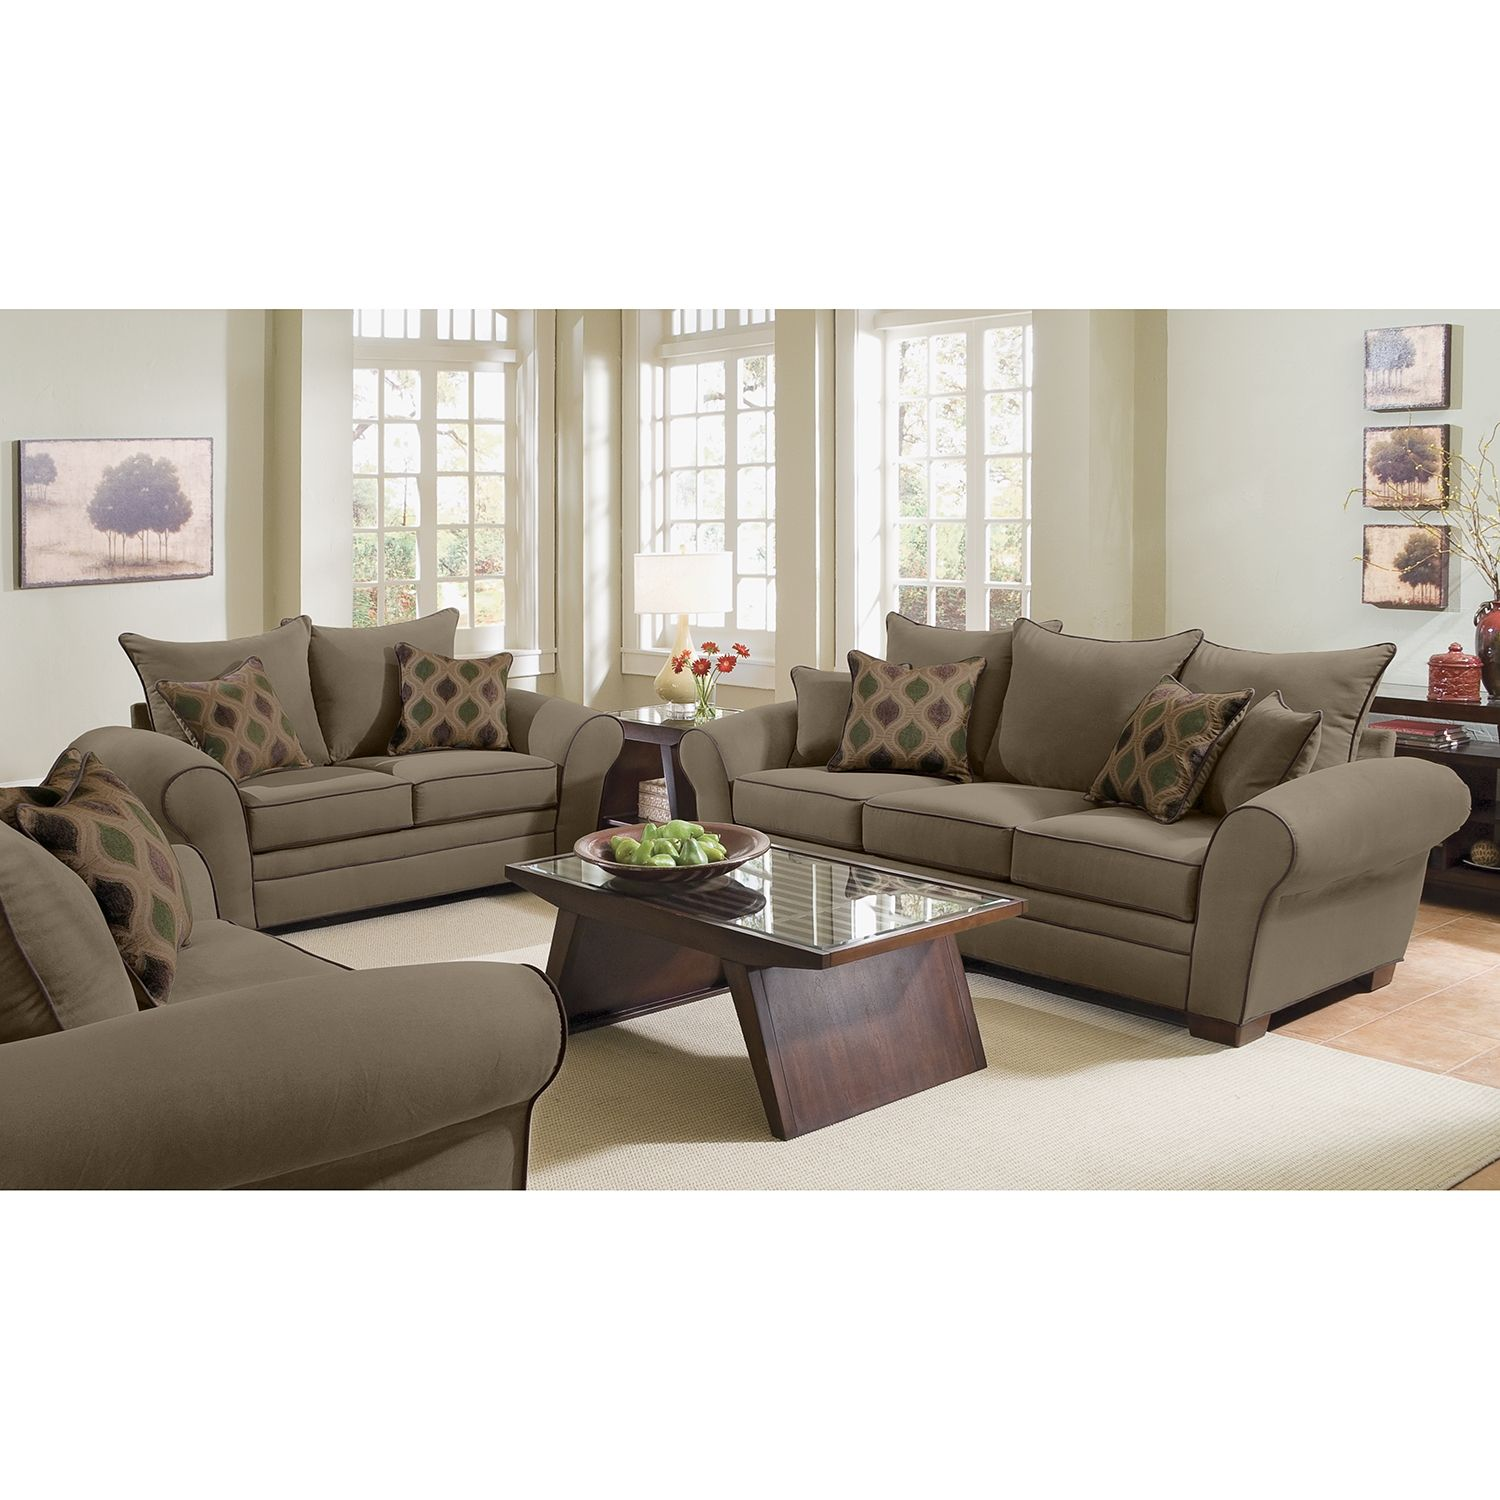 Rendezvous 2 Pc Living Room American Signature Furniture